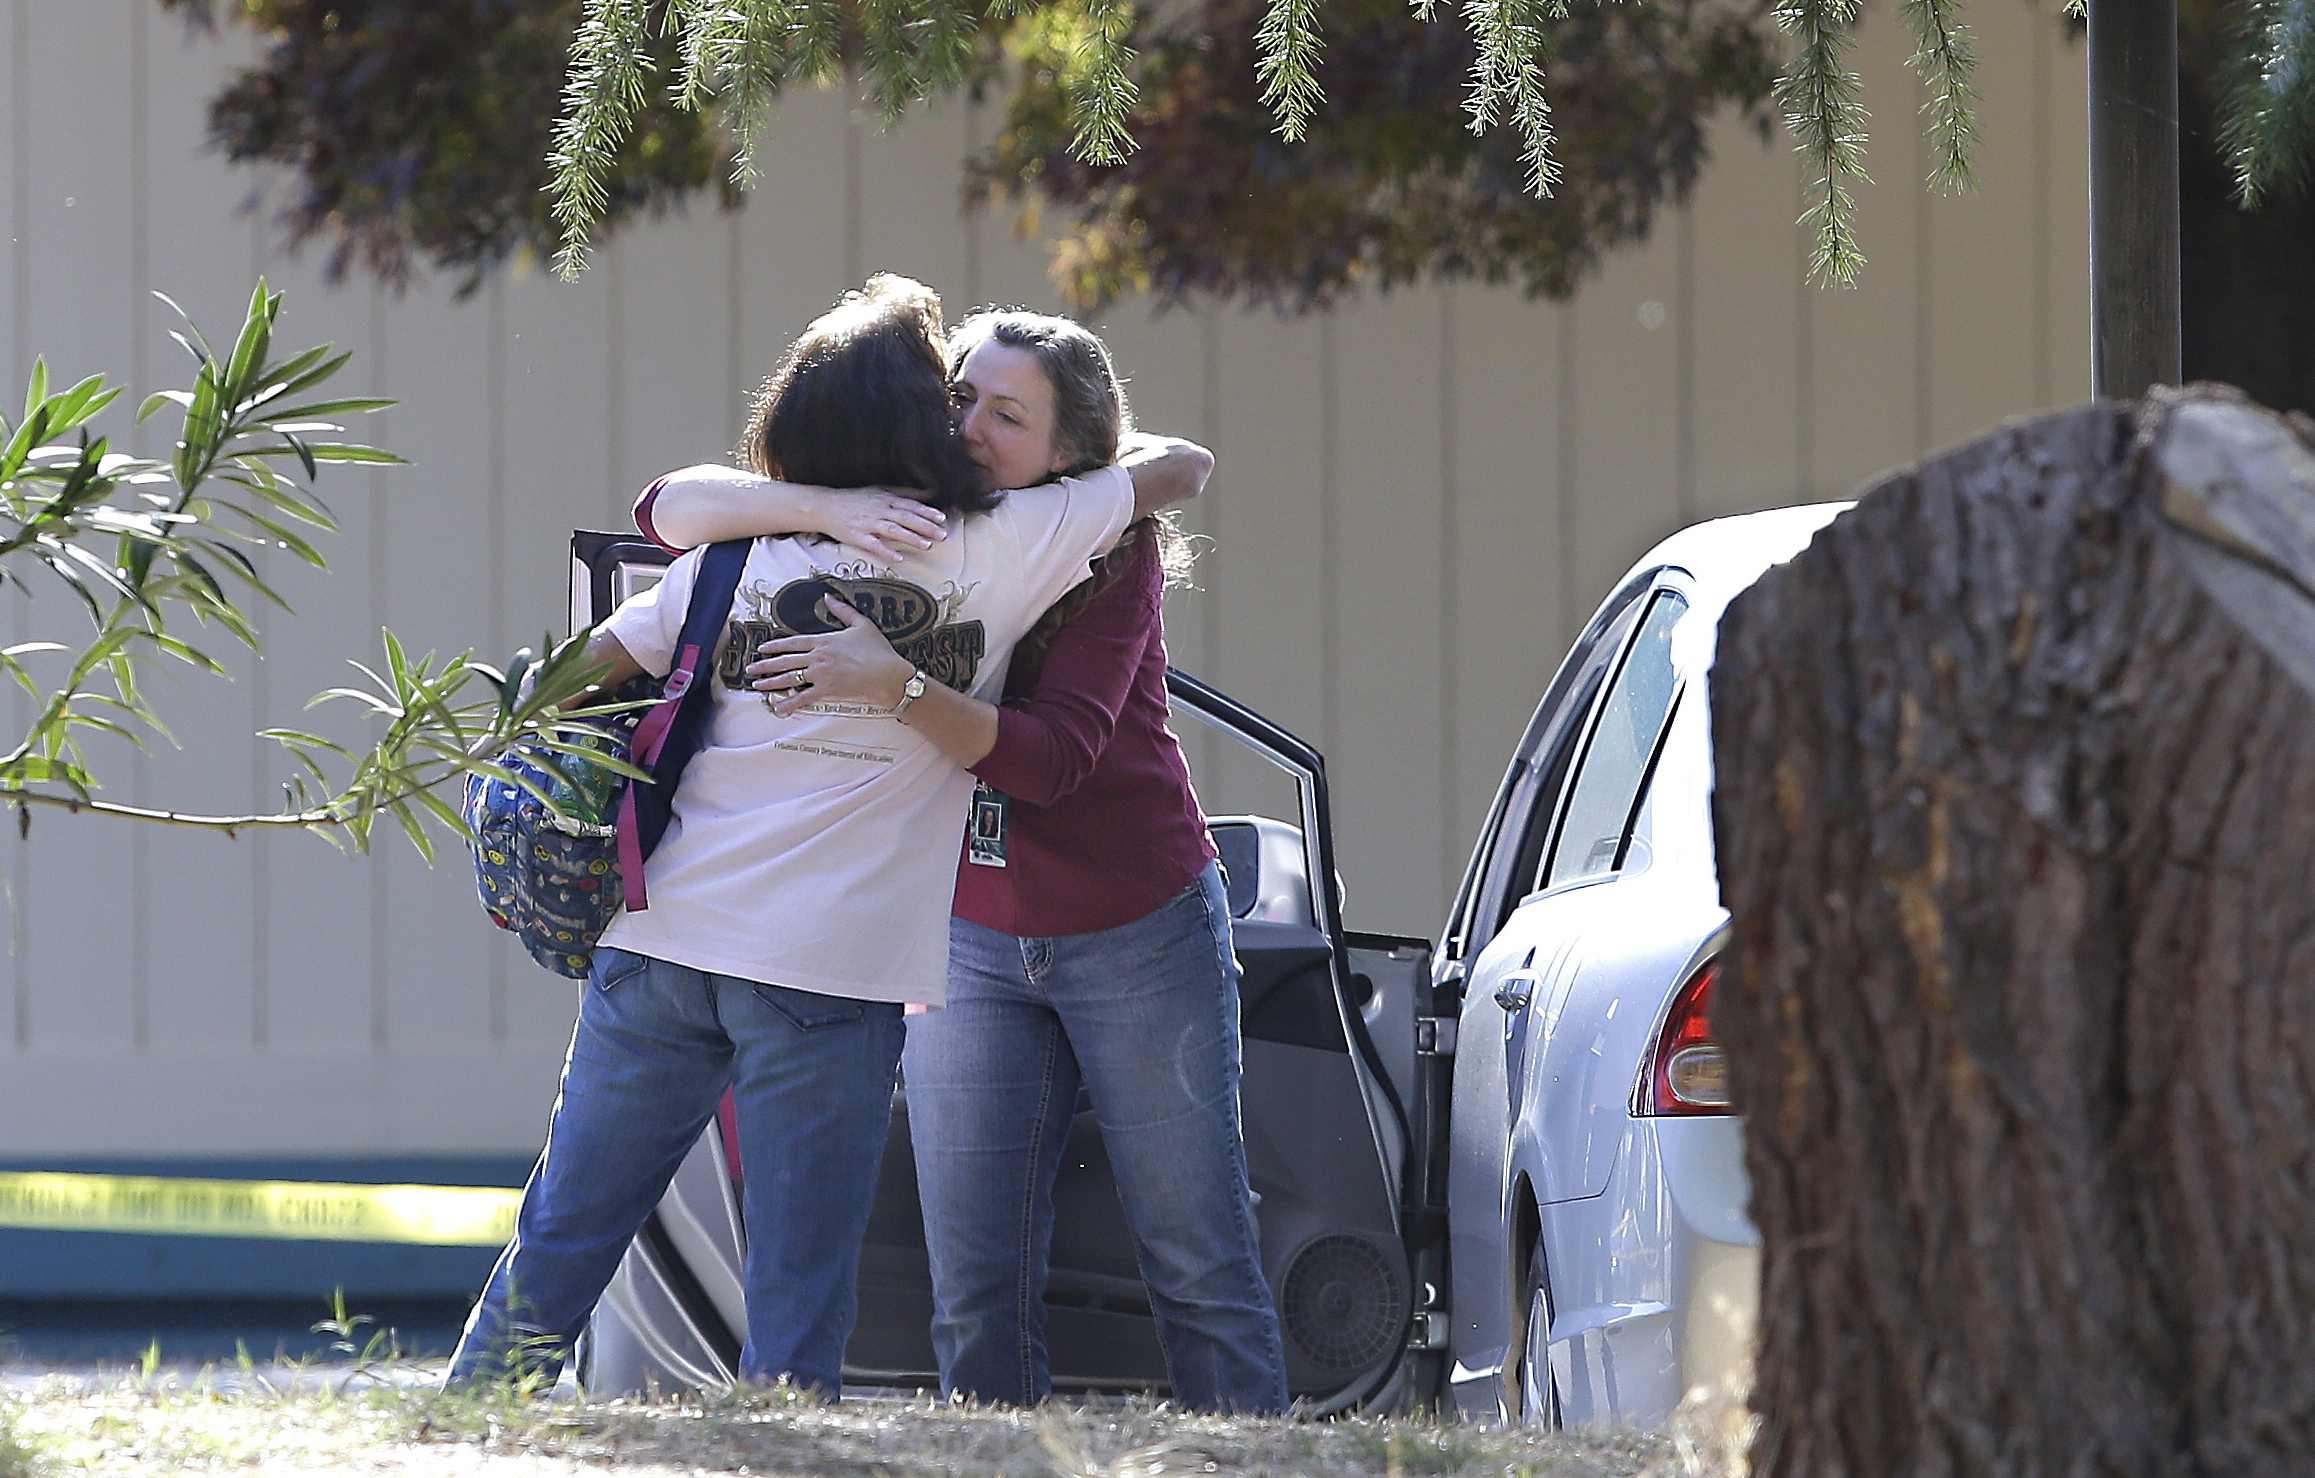 5 dead in mass shooting in Northern California town; terror at elementary school